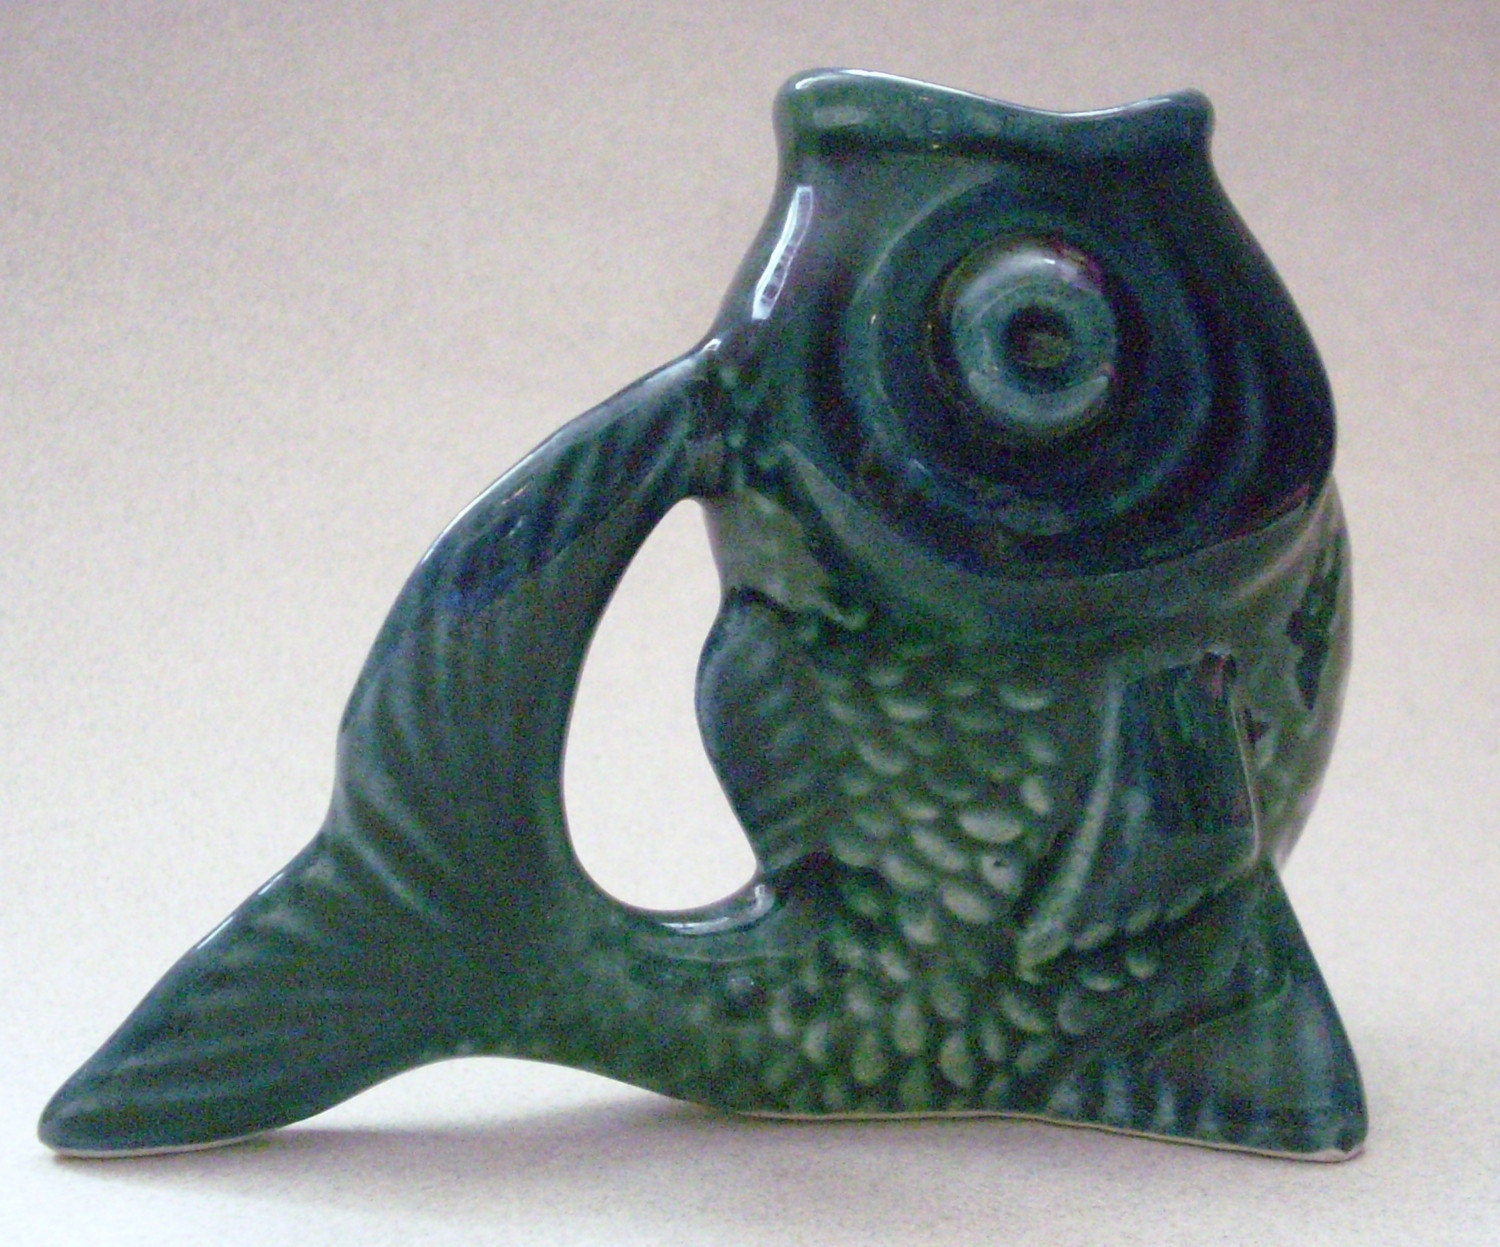 Vintage Teeny Made In Portugal Ceramic Fish Planter Vase